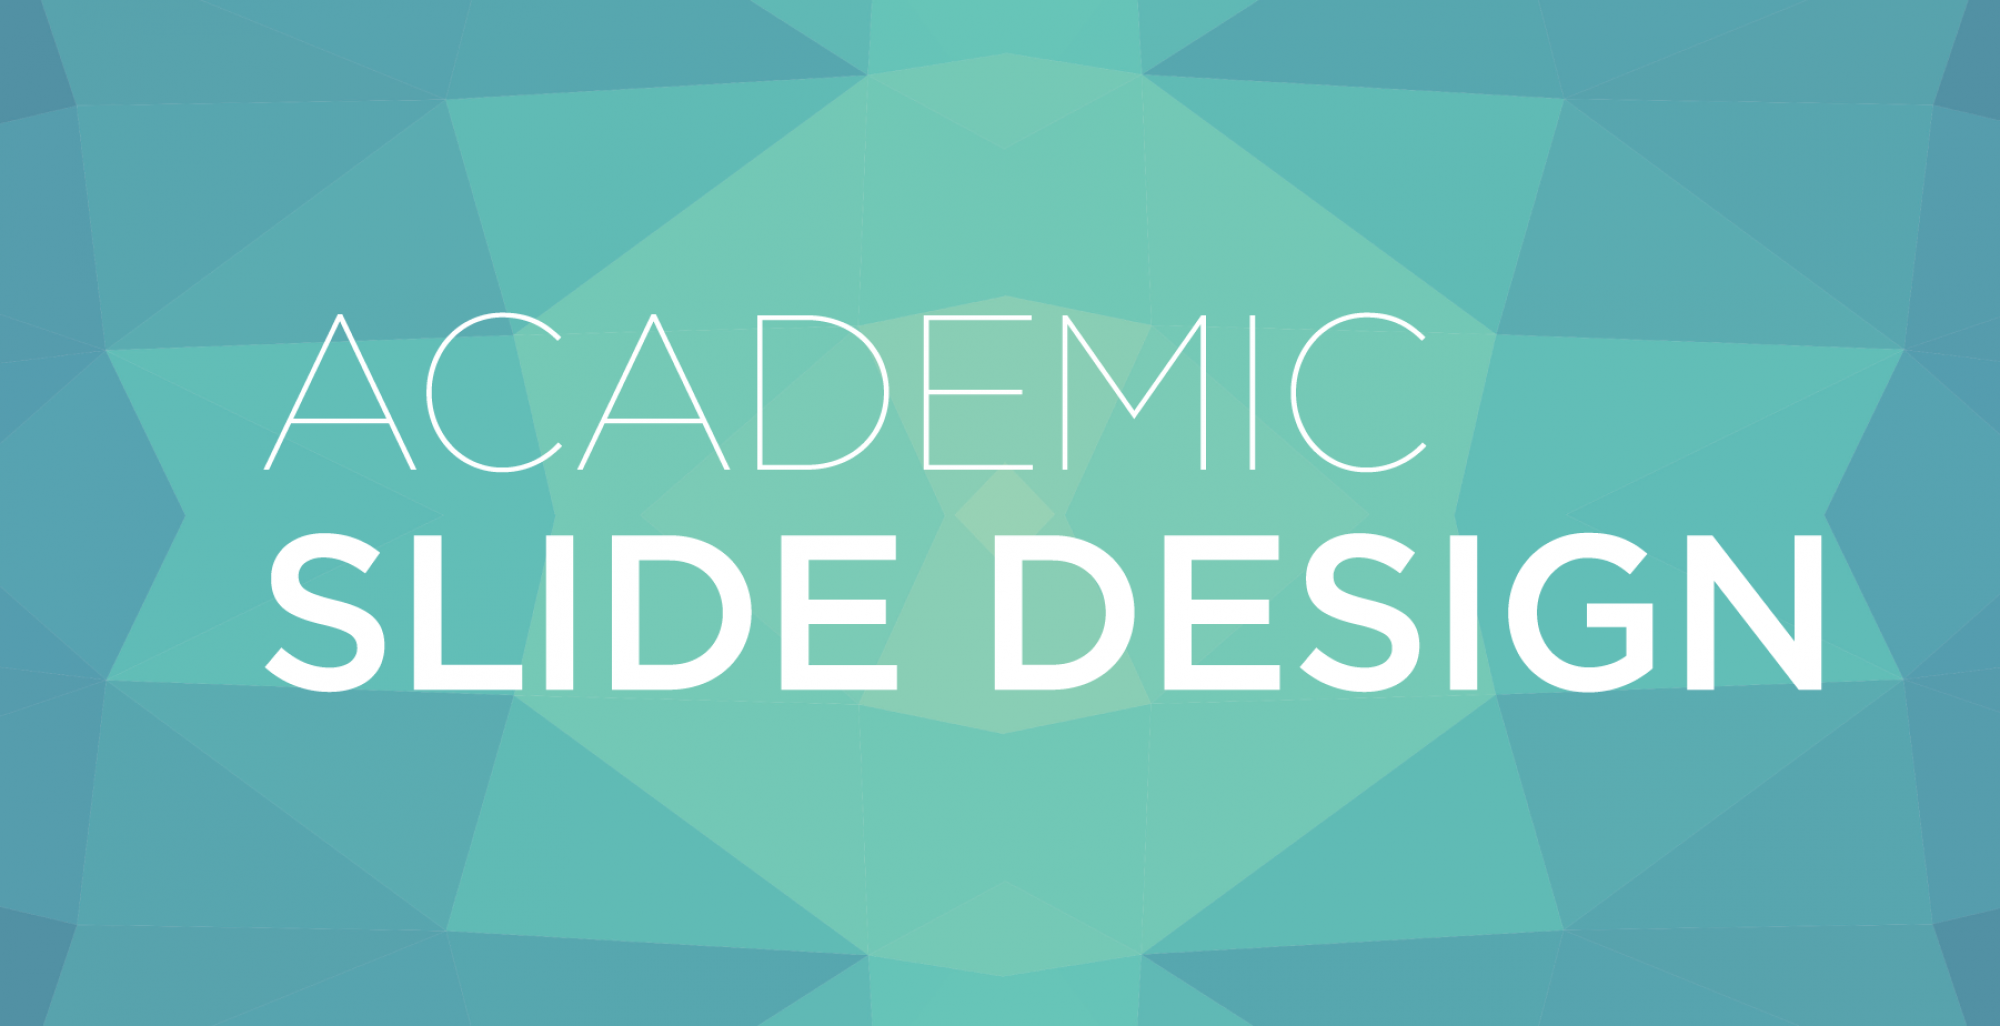 Academic Slide Design